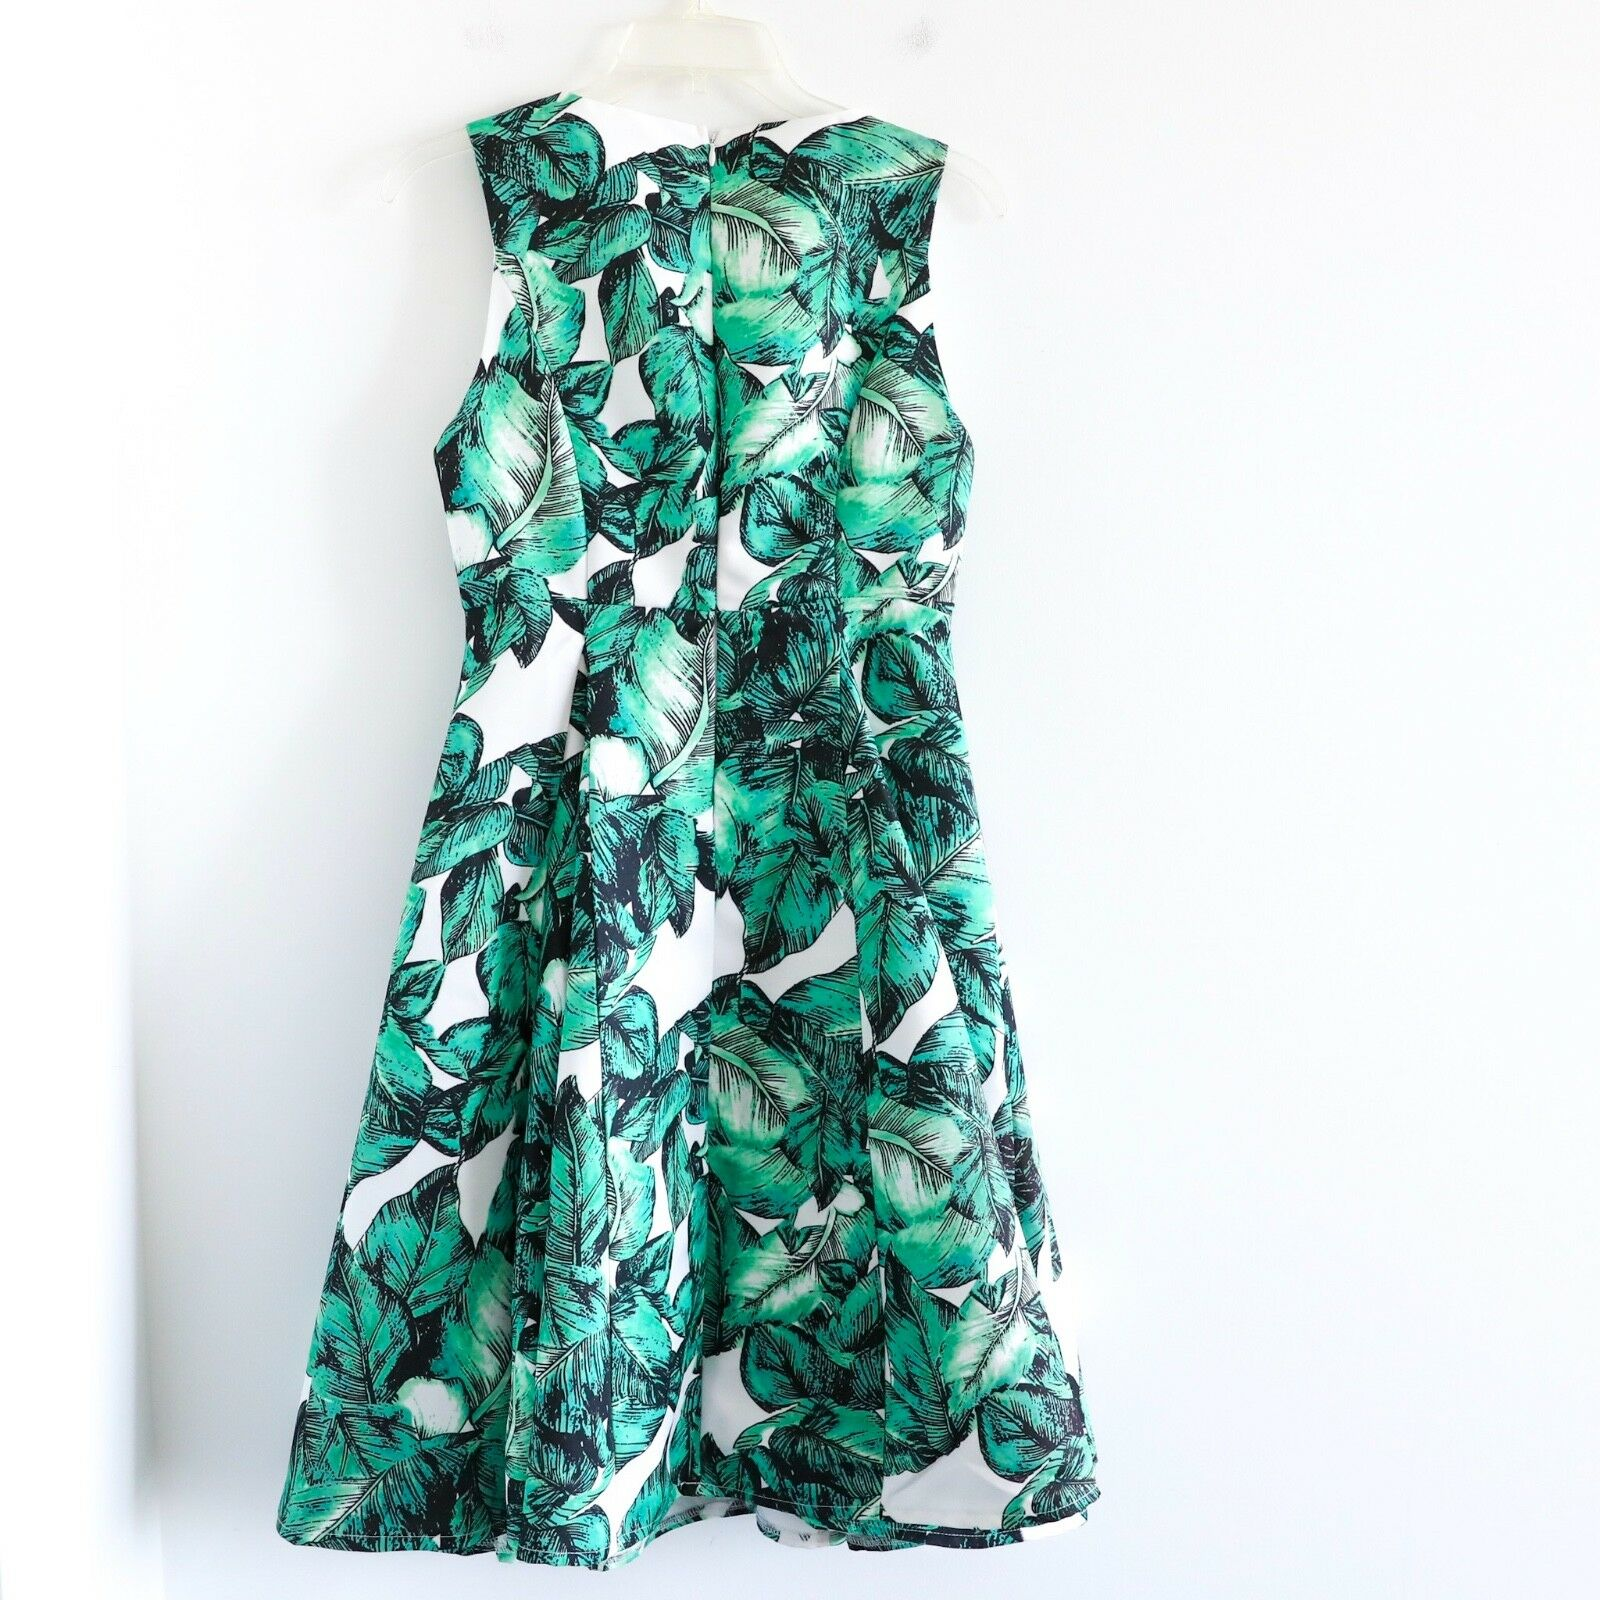 Ina The Amber Amber Amber 140  tropical white green leaves flare knee length dress S small 81cb55